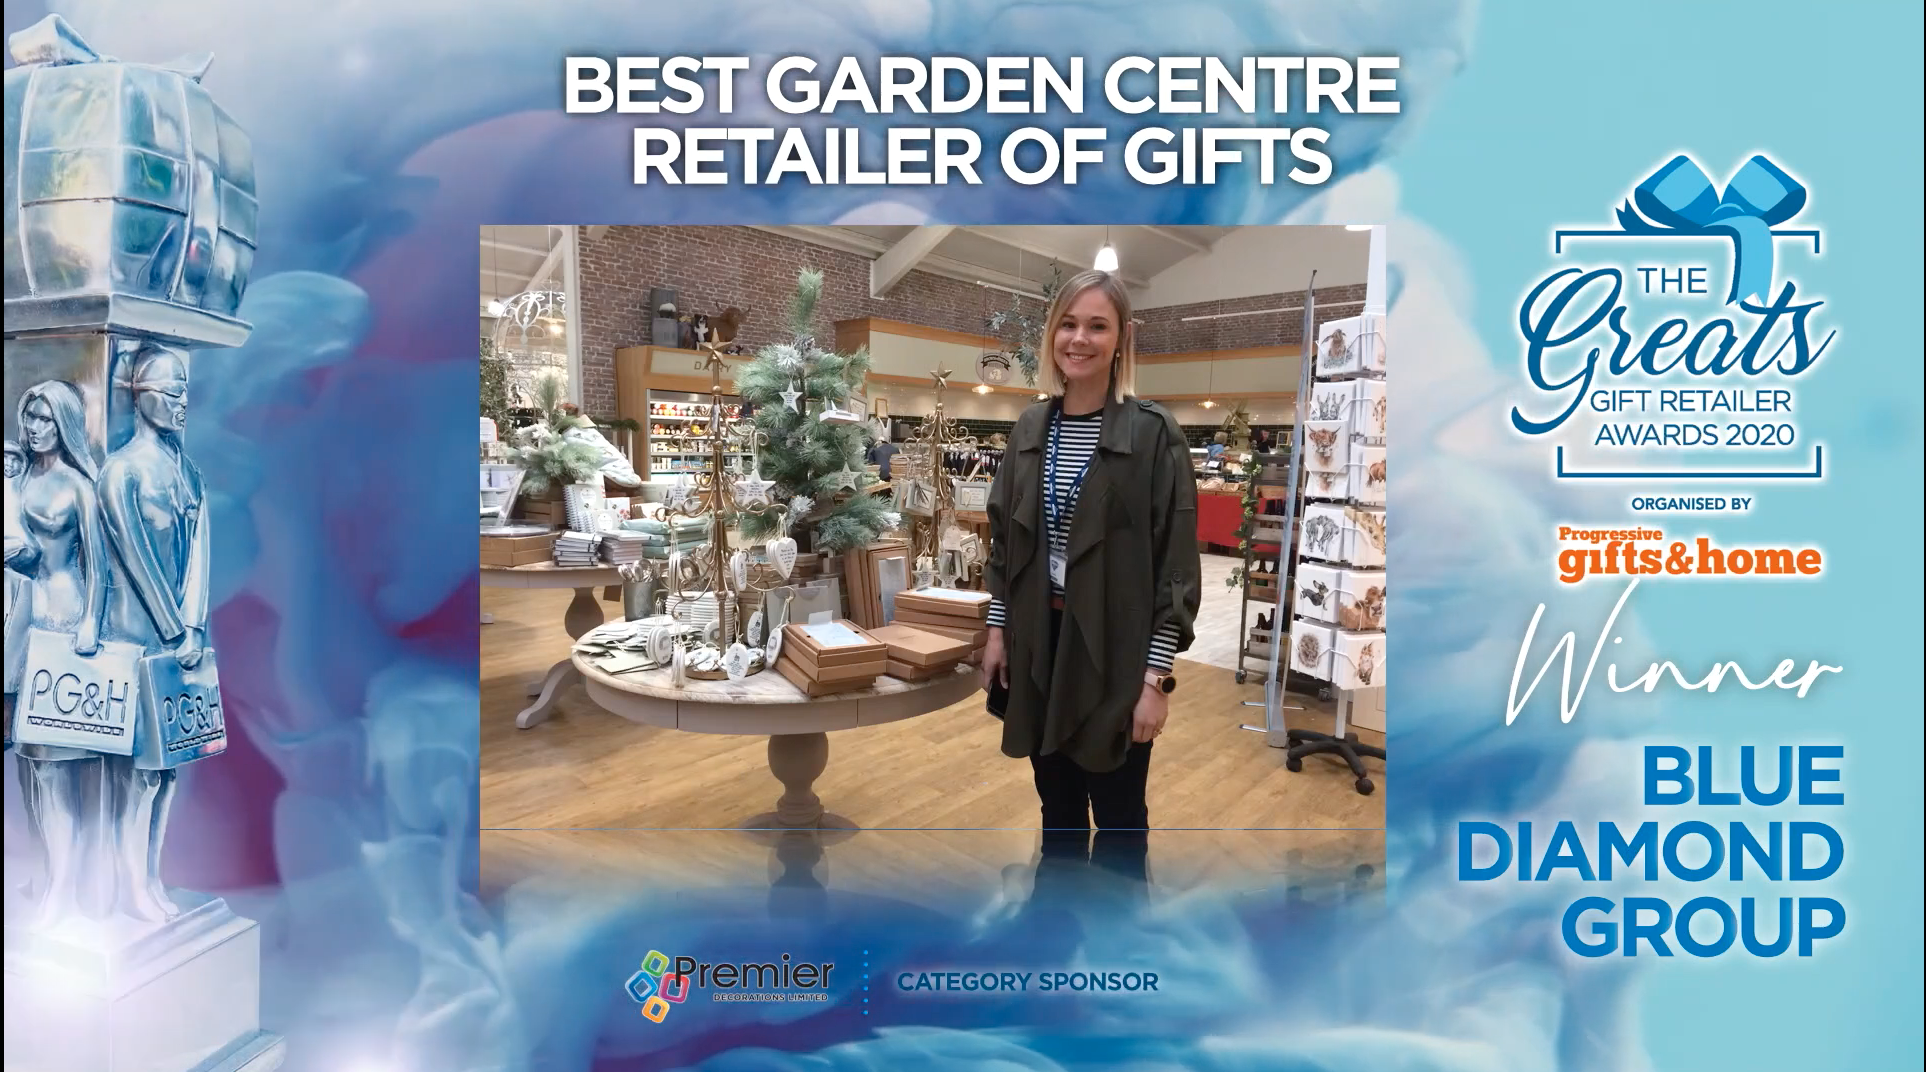 Above: Having been feted in The Retas last year for its greeting card excellence, Blue Diamond Group has now also been recognised for its gift retailing prowess.